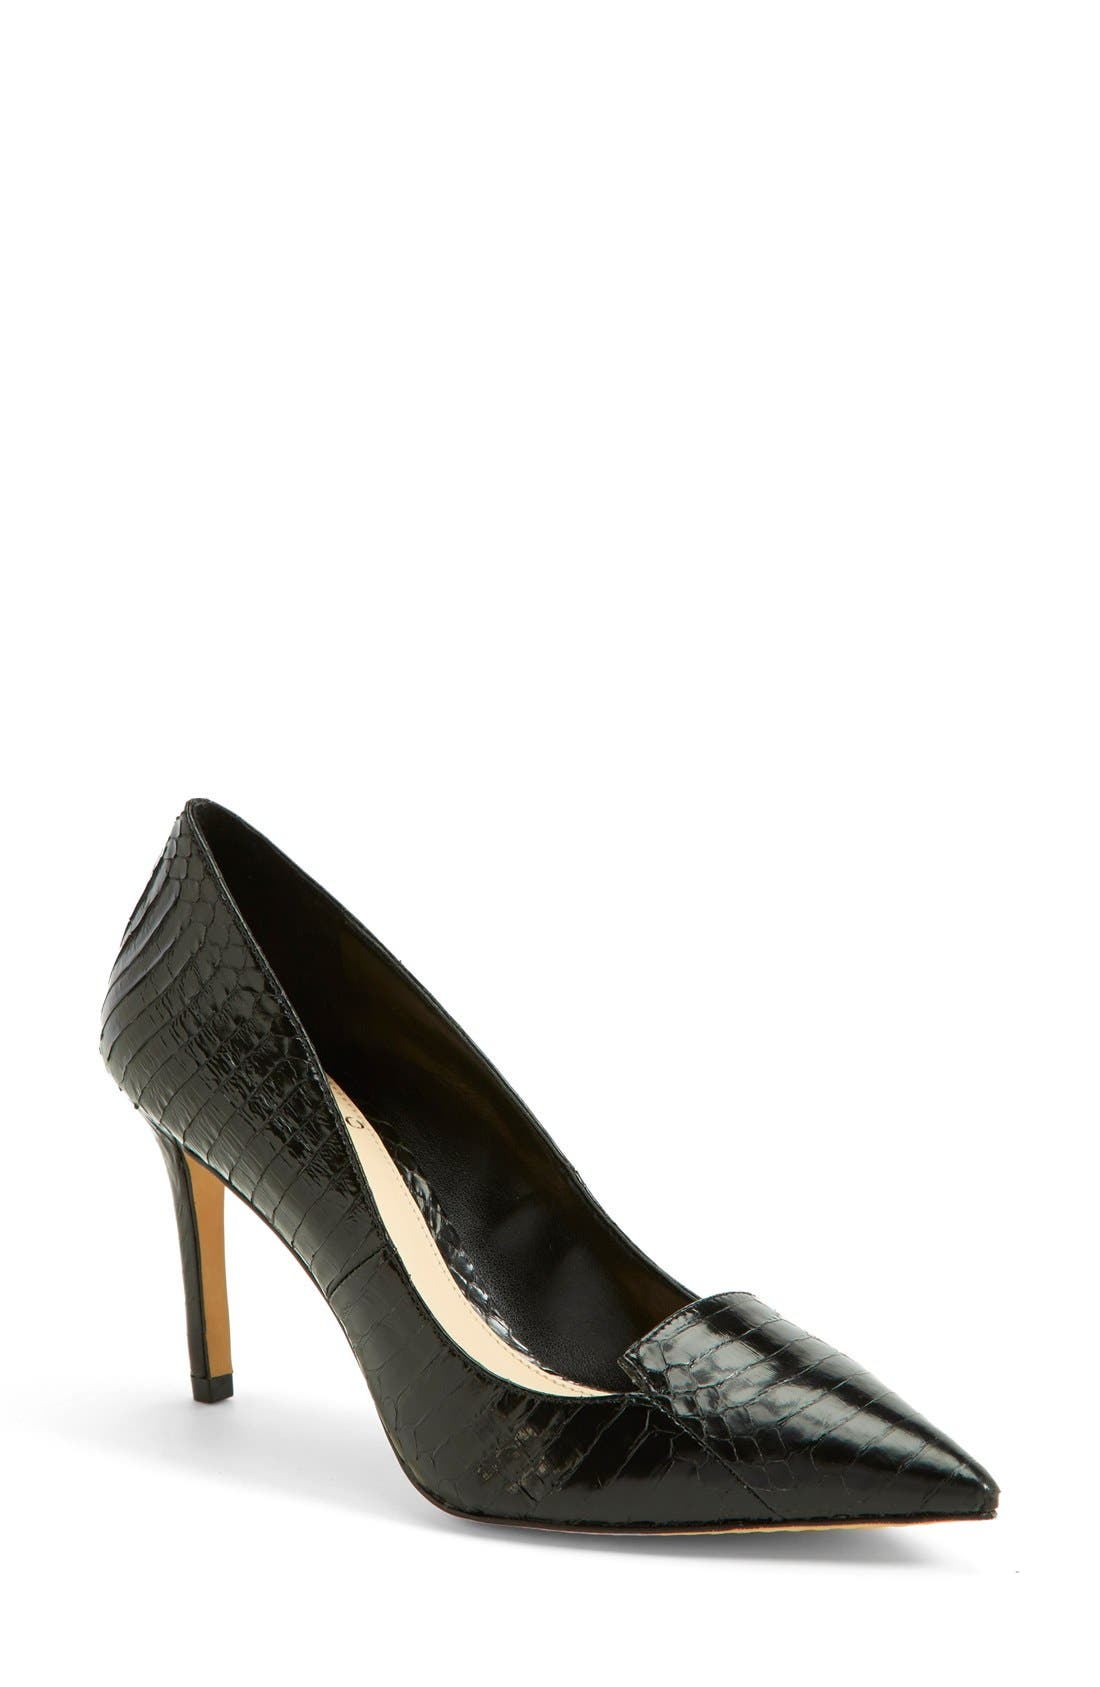 Alternate Image 1 Selected - Vince Camuto 'Panan' Pump (Women) (Nordstrom Exclusive)